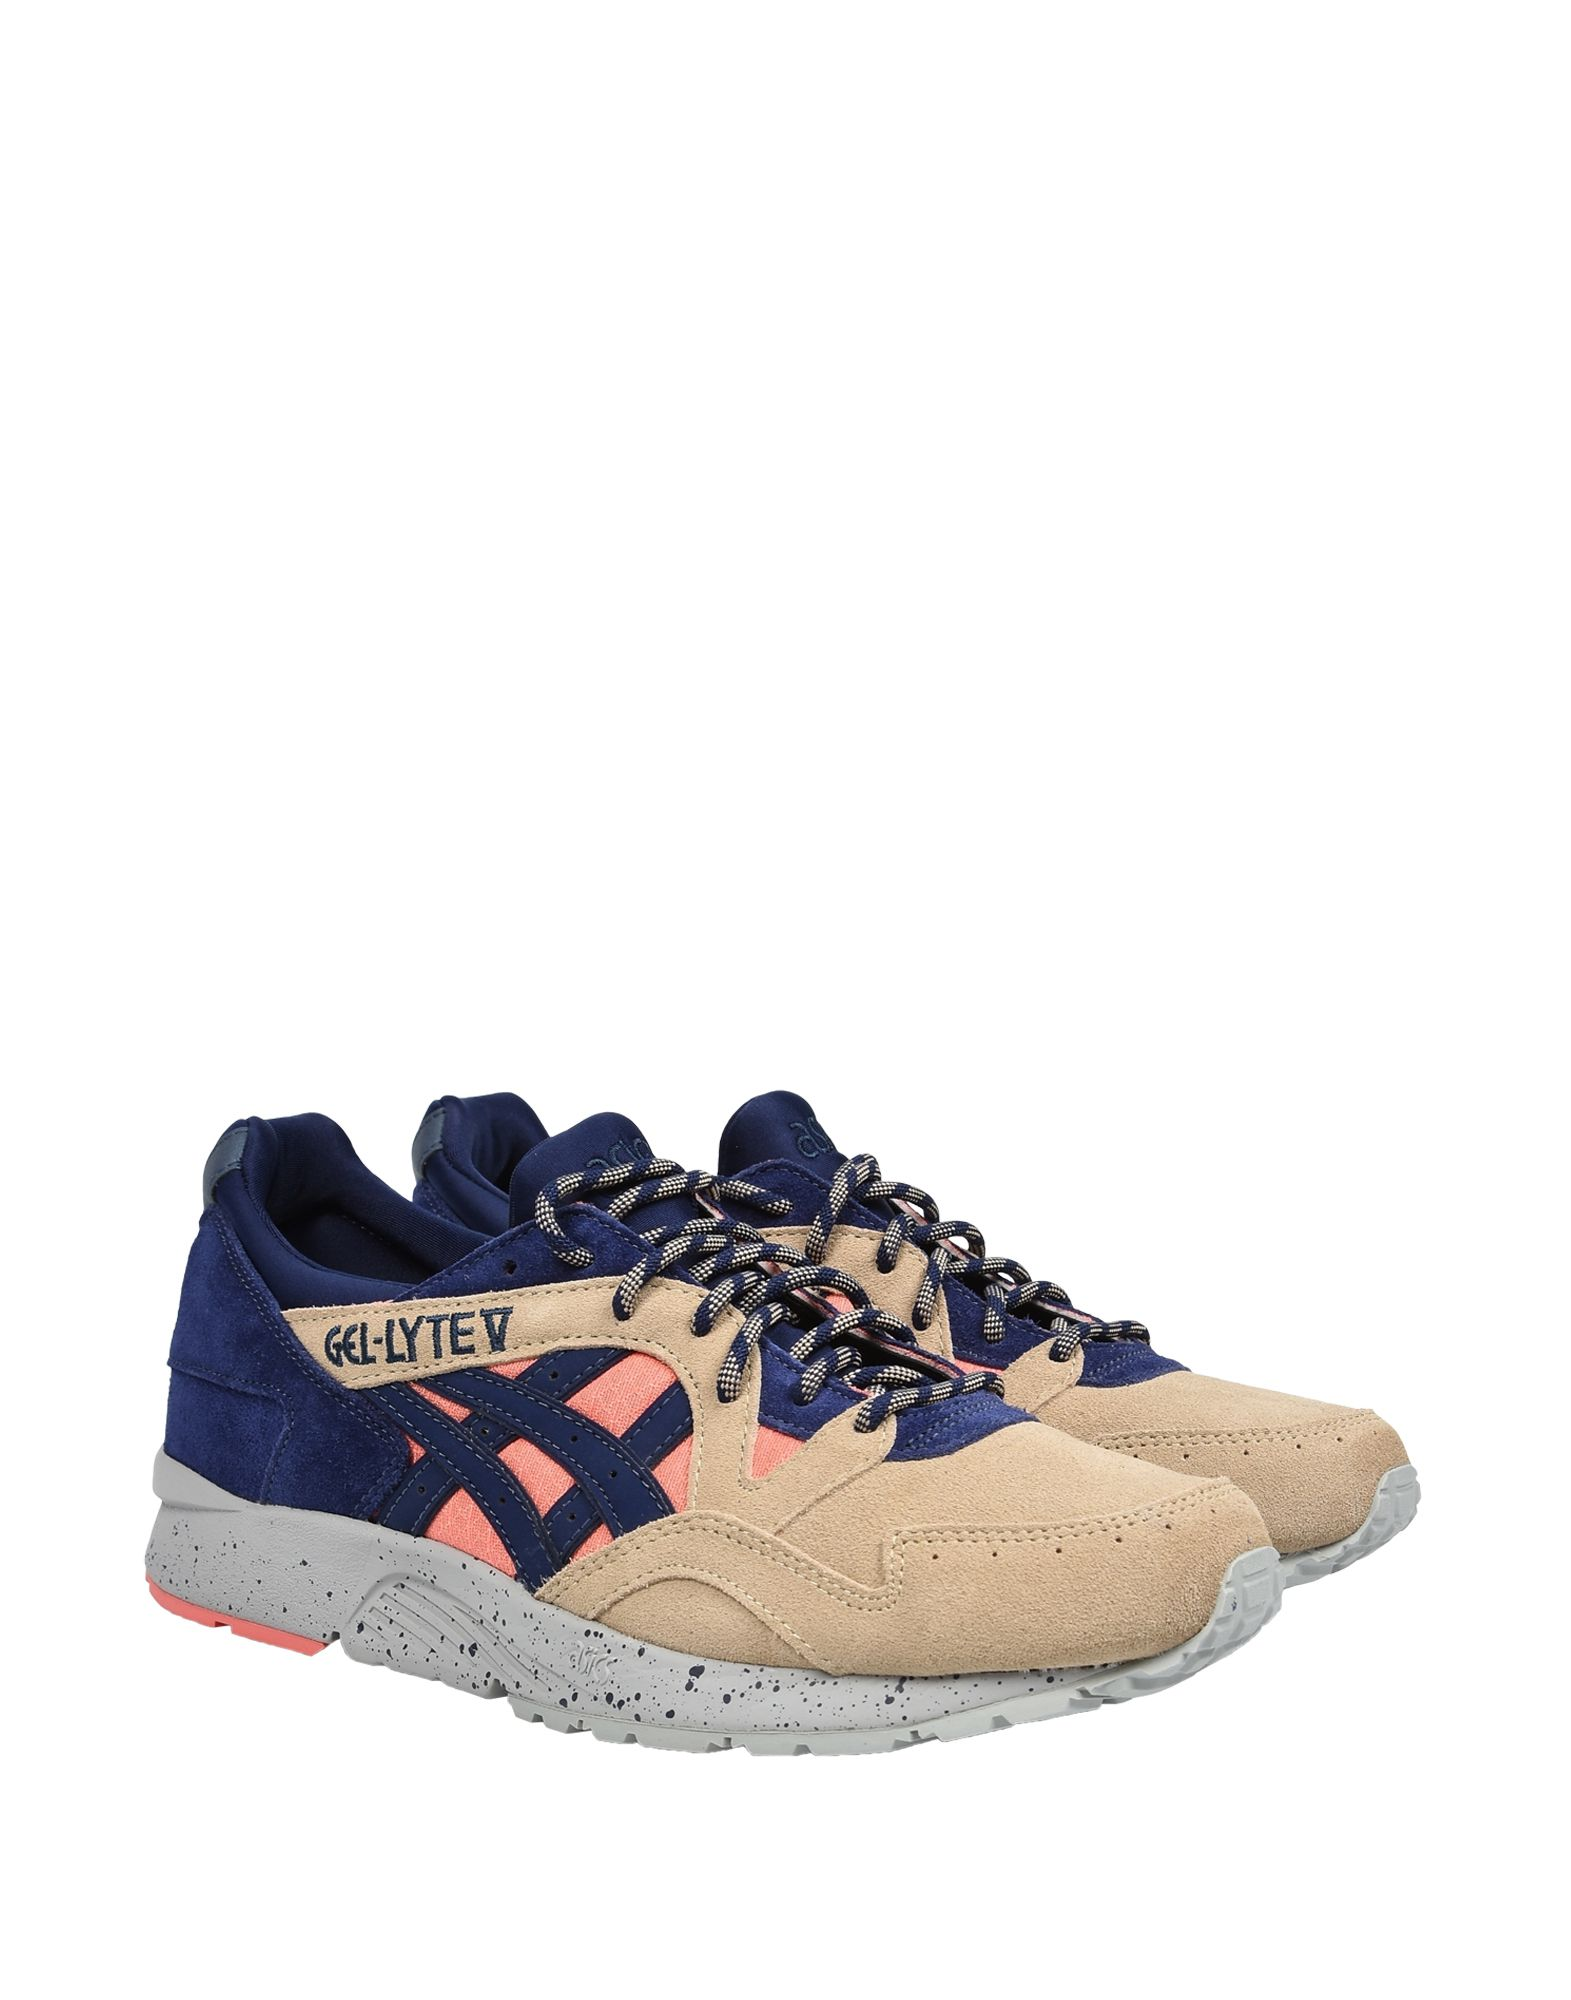 Sneakers Asics Tiger Lite 5 - Homme - Sneakers Asics Tiger sur